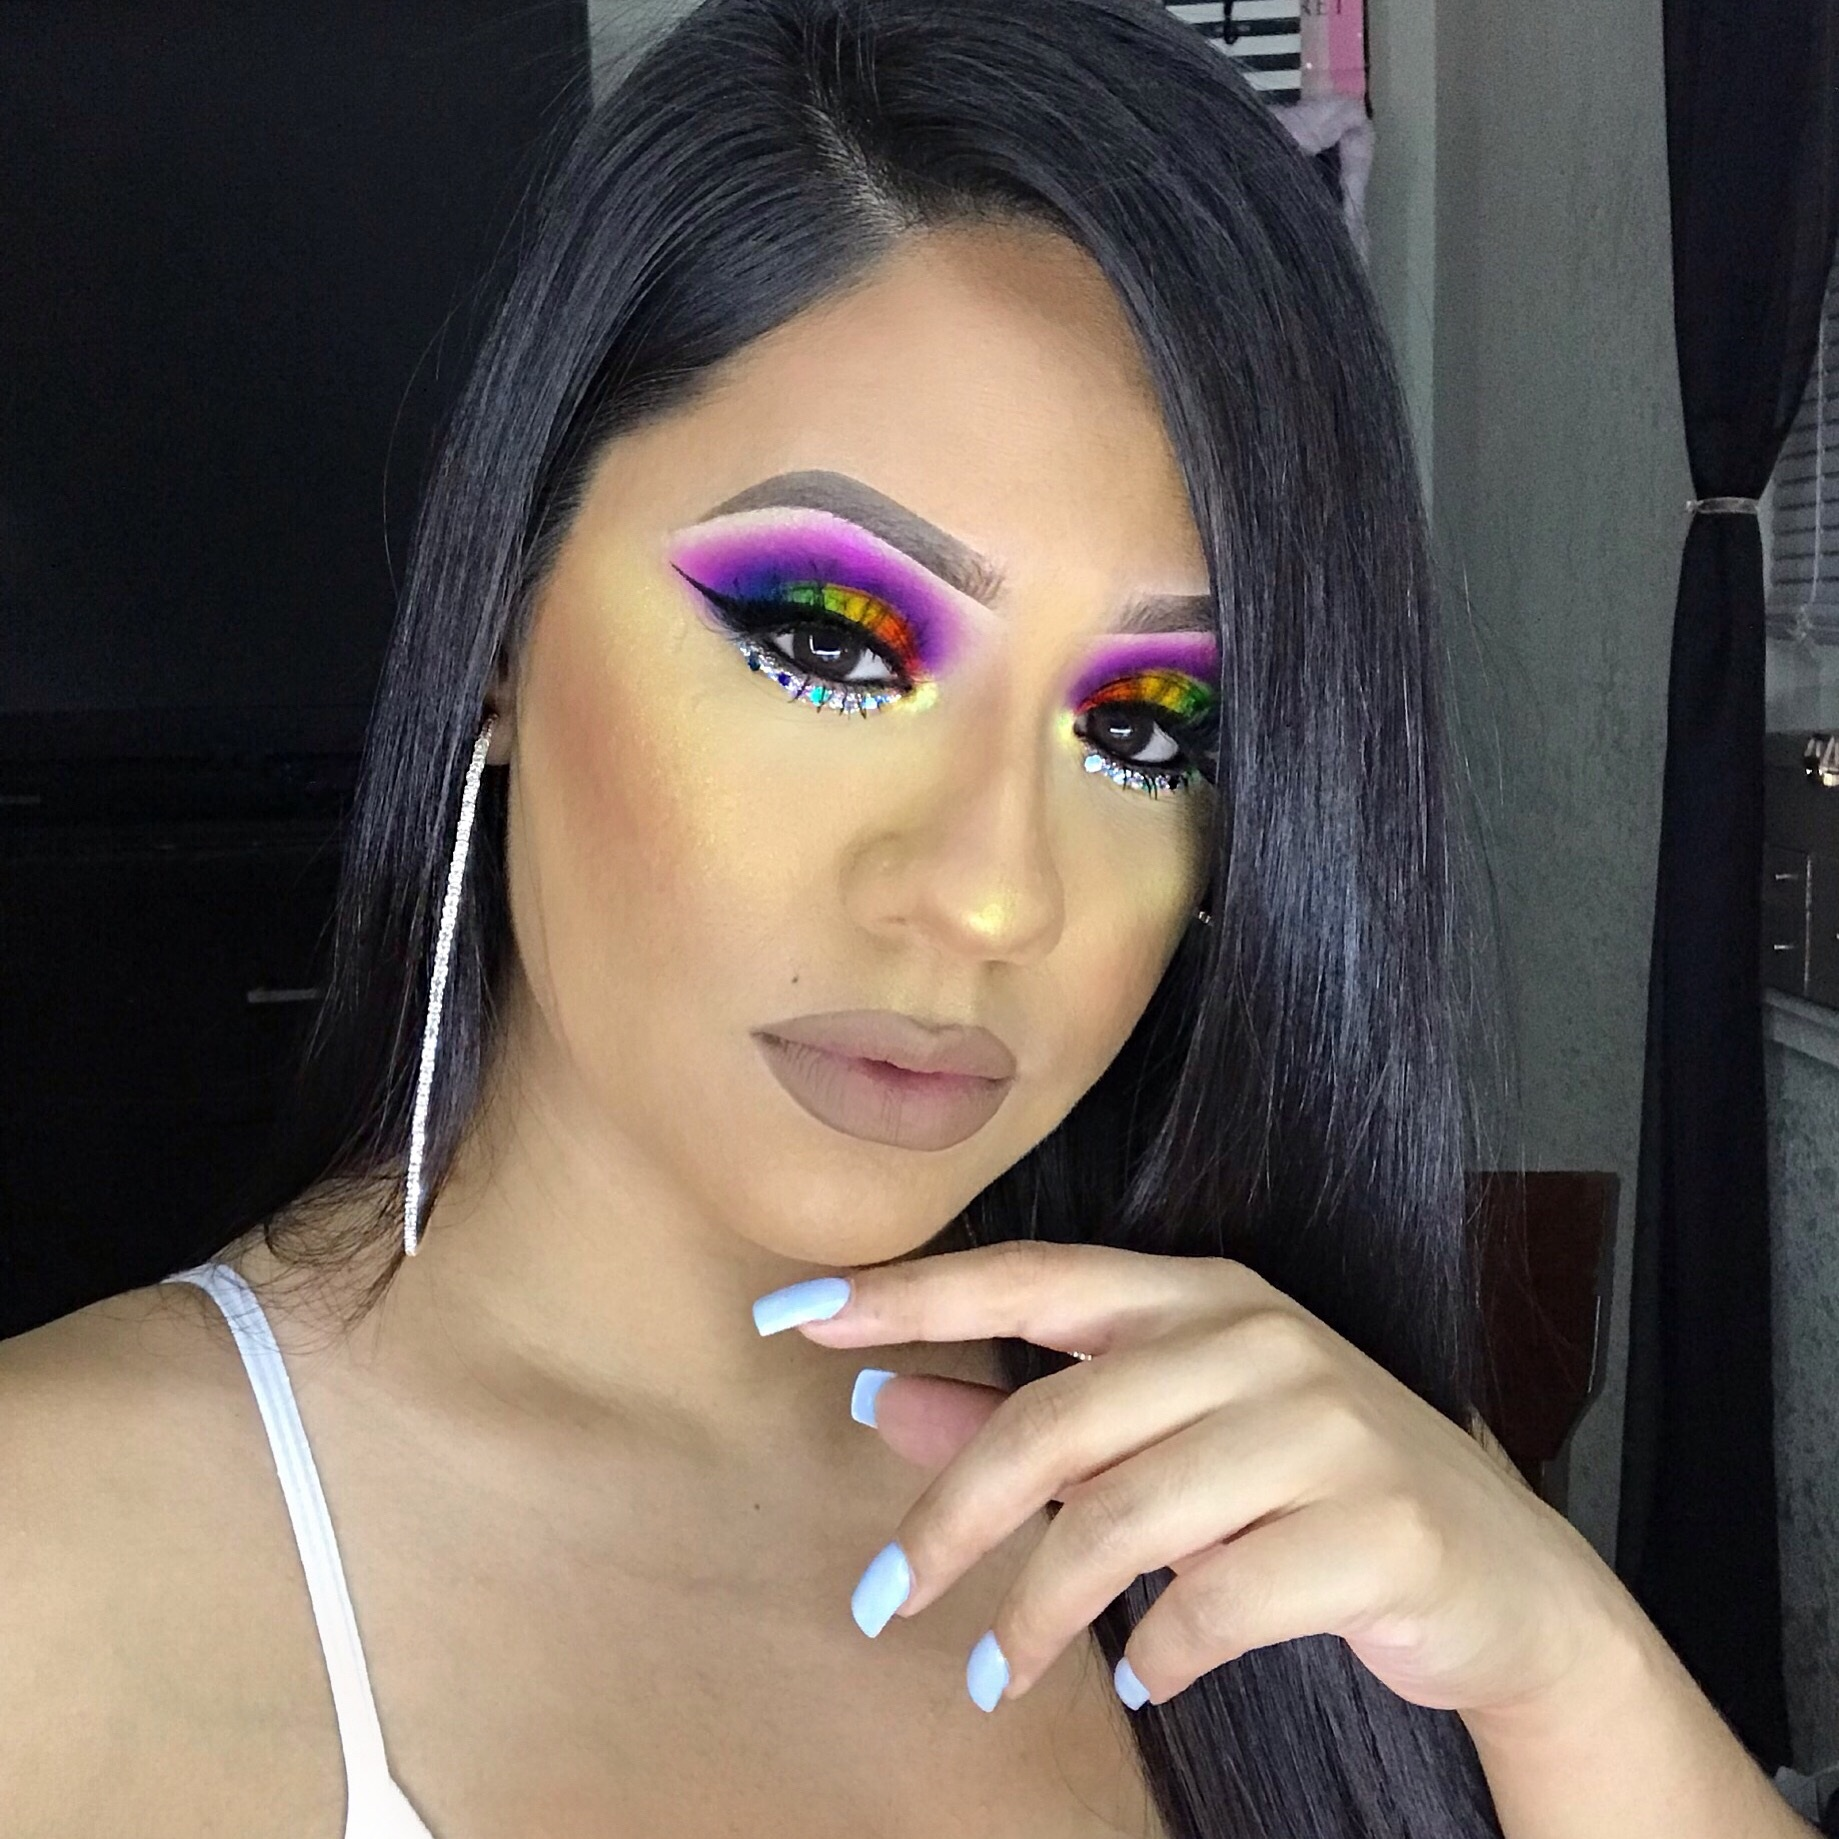 """@prettii_tonii - Discount Code:""""prettiitonii""""I have loved Makeup since I was 12 years old. Now, as an adult and mommy of 3 children, I struggle with adult acne. Makeup allows me to feel CONFIDENT and BEAUTIFUL on the inside and out. Makeup is my armor when I struggle to accept my flaws. Makeup means the world to me. I enjoy creating different looks (especially with glitter), and continue to learn different makeup techniques every day. Thank you so much to everyone who gives me their continued LOVE & SUPPORT on my Makeup Journey. You give me the motivation that I need to keep going!-Toni"""